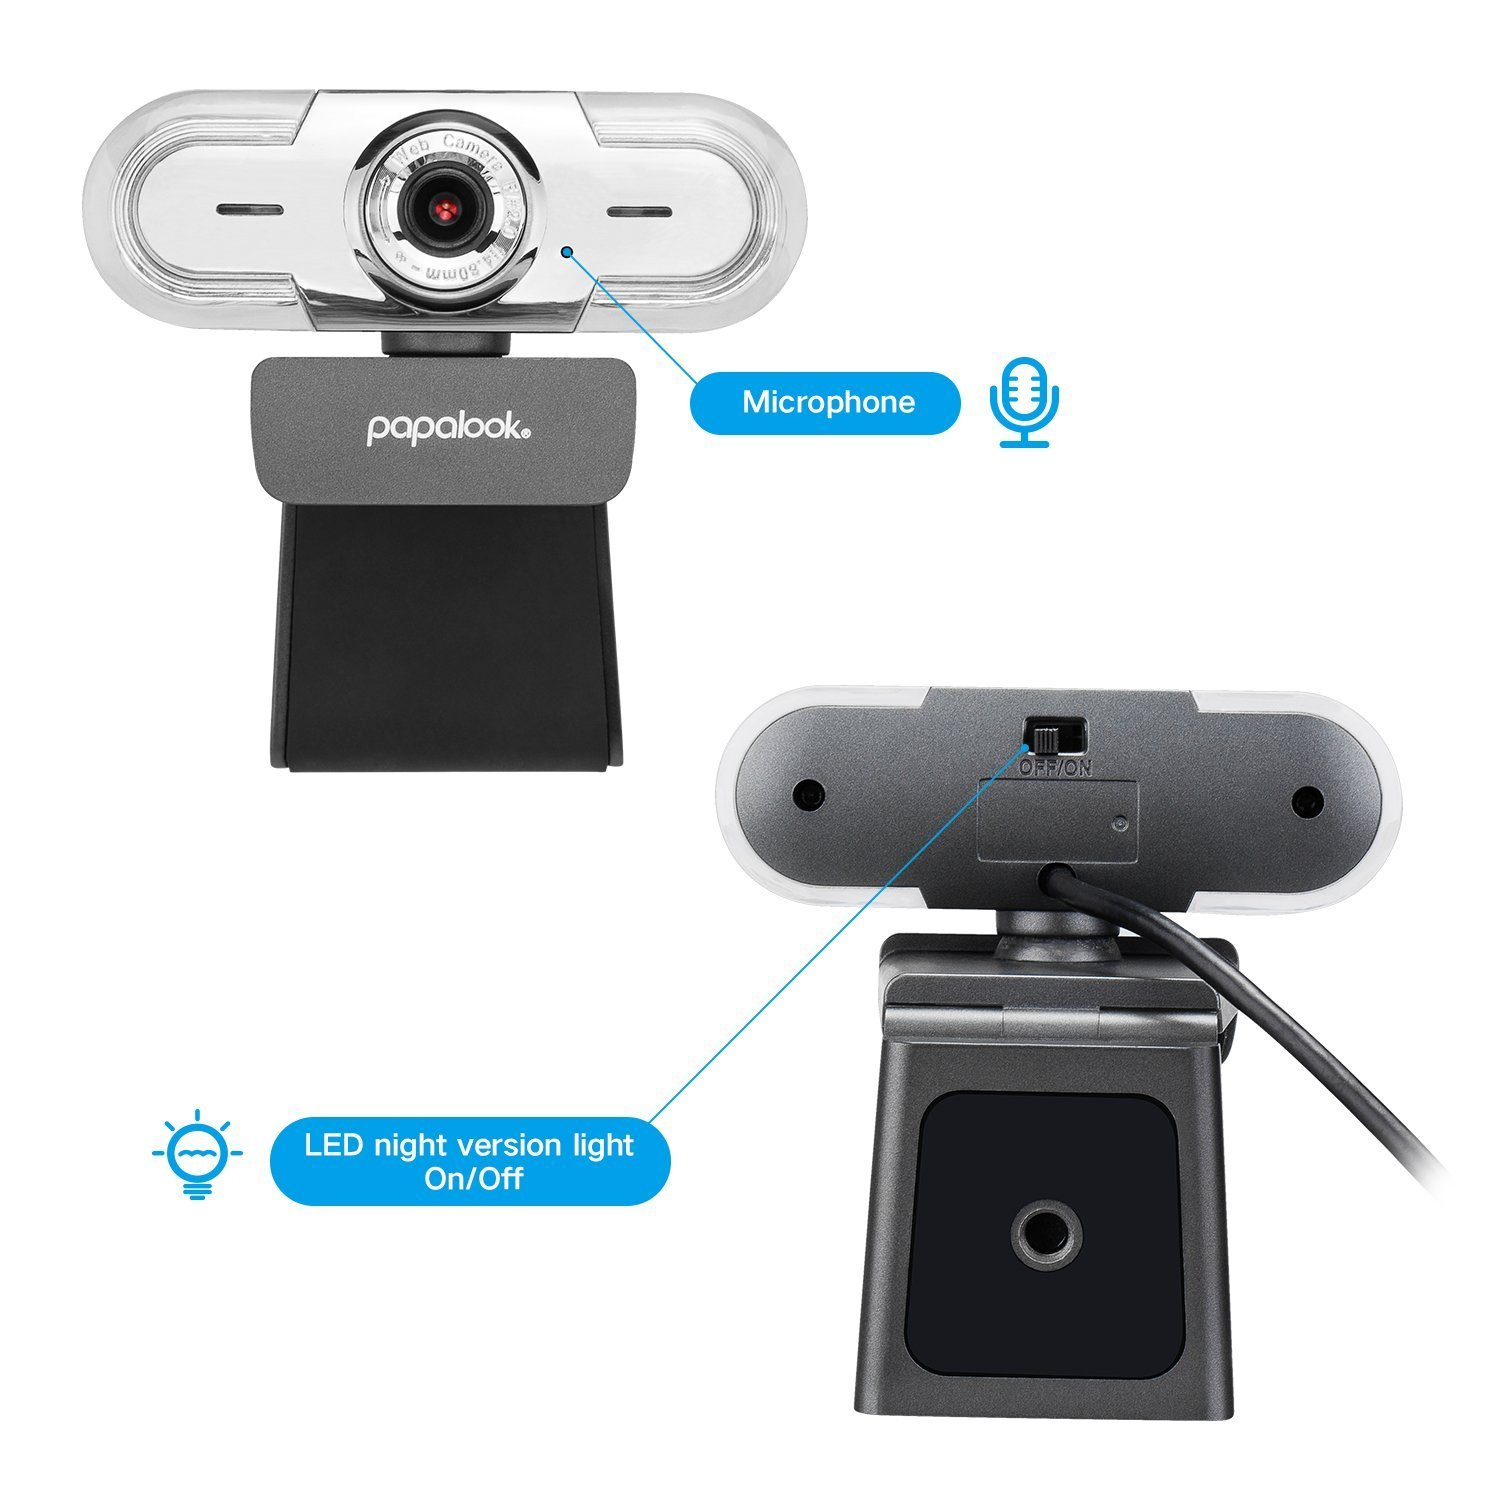 PAPALOOK 1080P HD Webcam, USB PC Computer Camera PA452 PRO Web Camera, Built-in Mic for Video Skype YouTube Compatible with Windows 7/8/10 by papalook (Image #4)